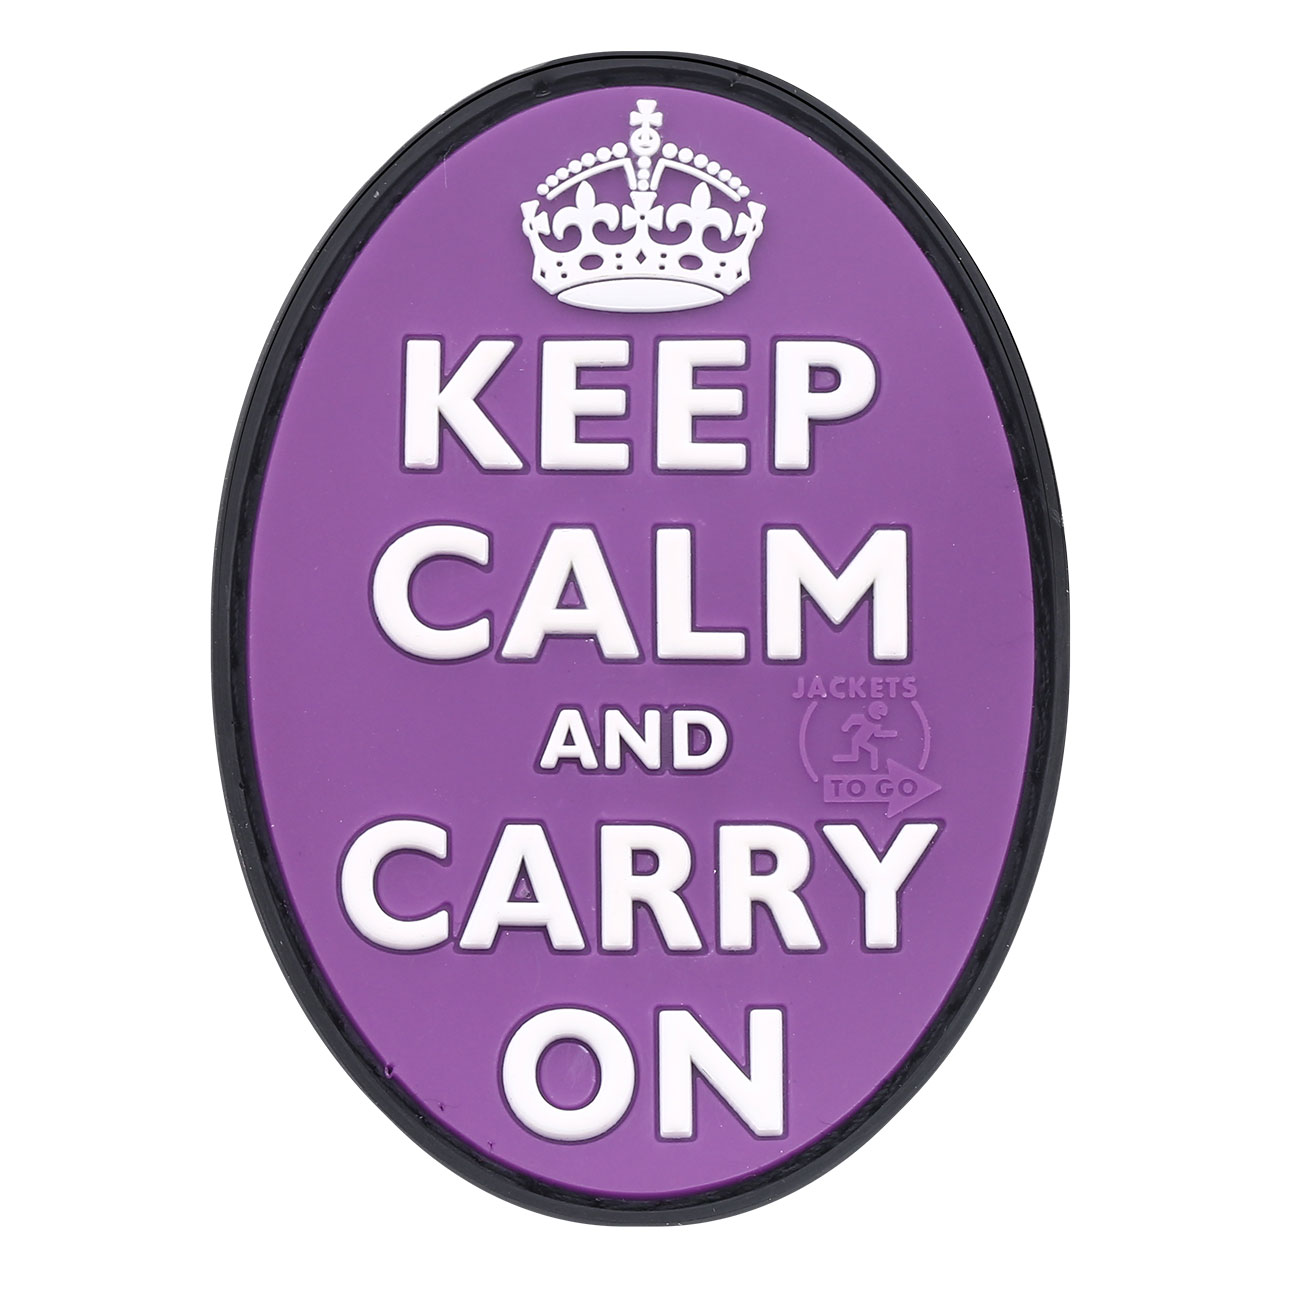 JTG 3D Rubber Patch Keep Calm and Carry on lila 0